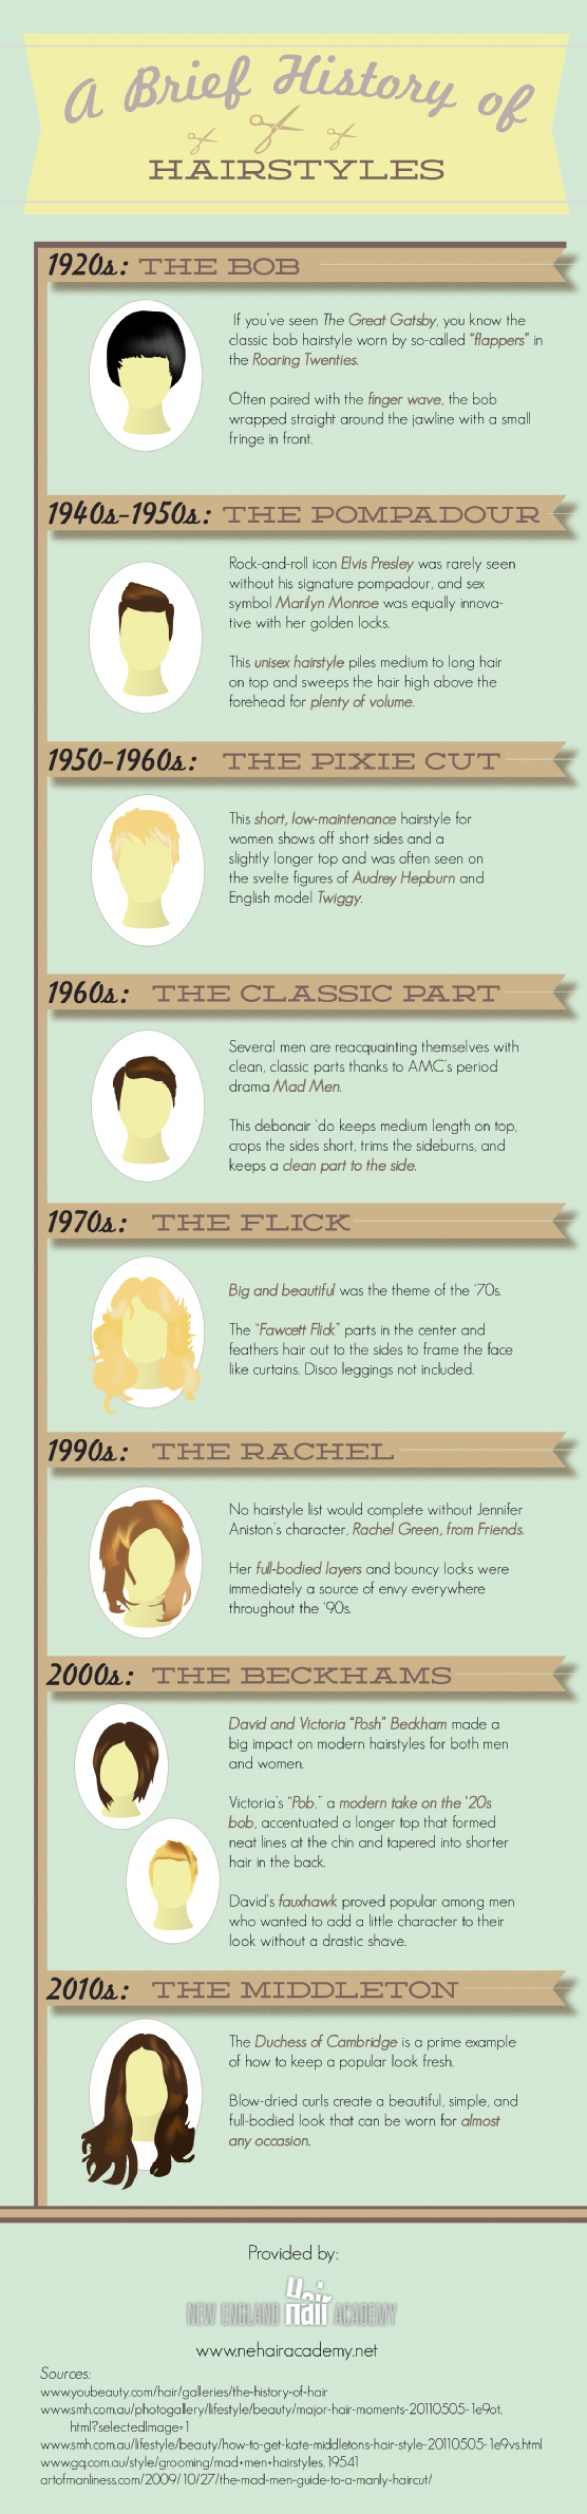 Infographic : Brief History of Hairstyles - SkinSecrets.in